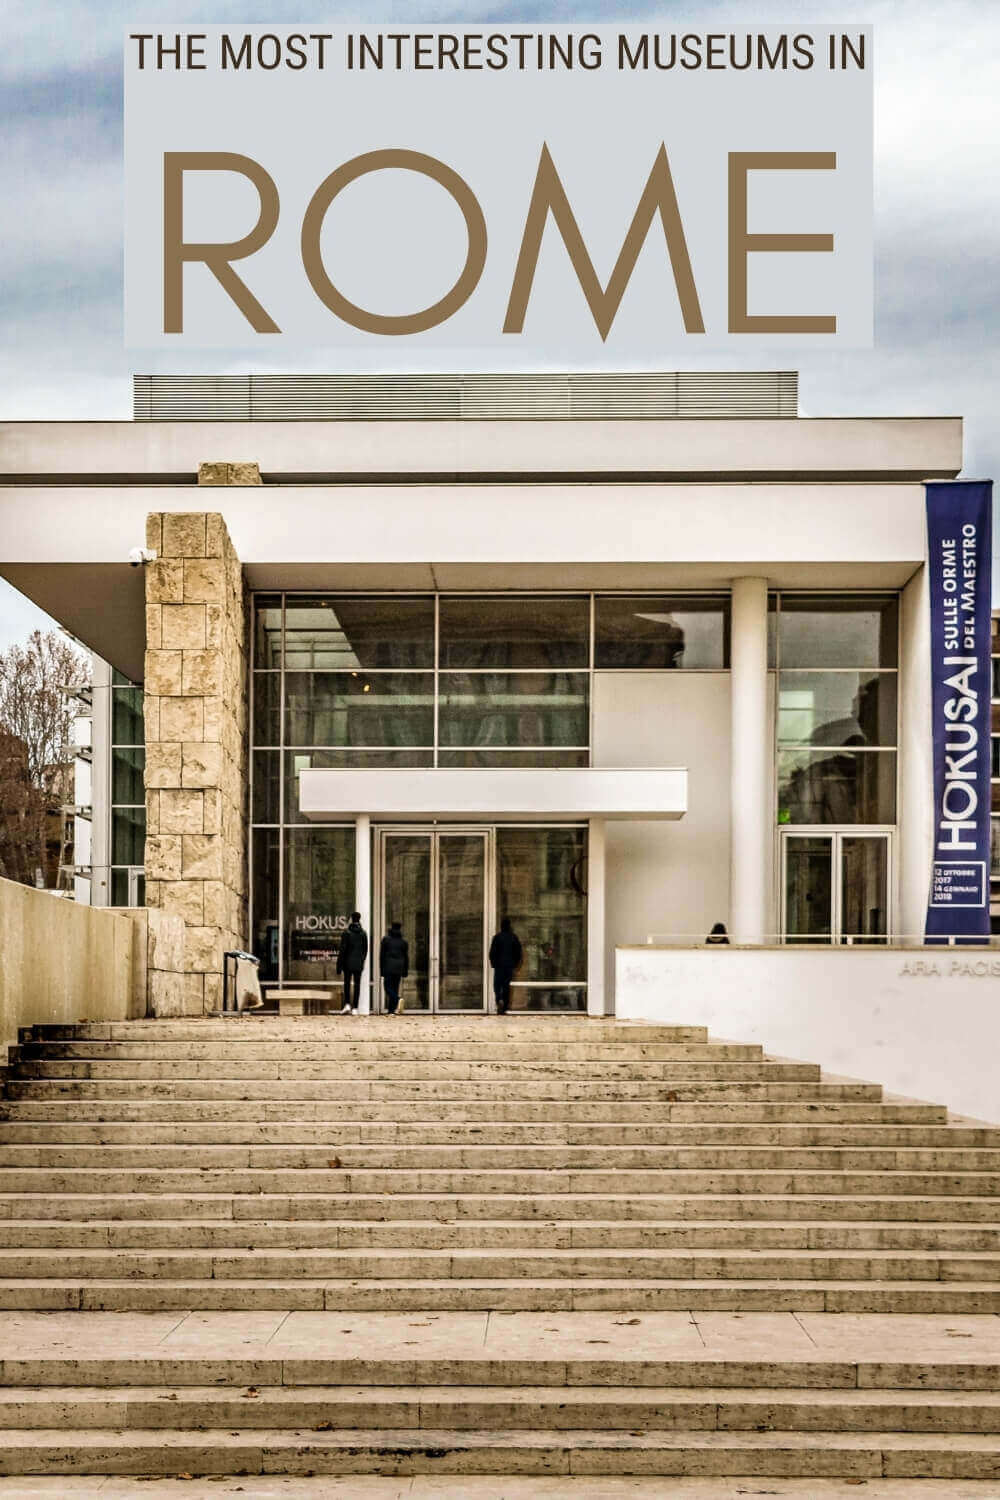 Read about the best museums in Rome - via @strictlyrome